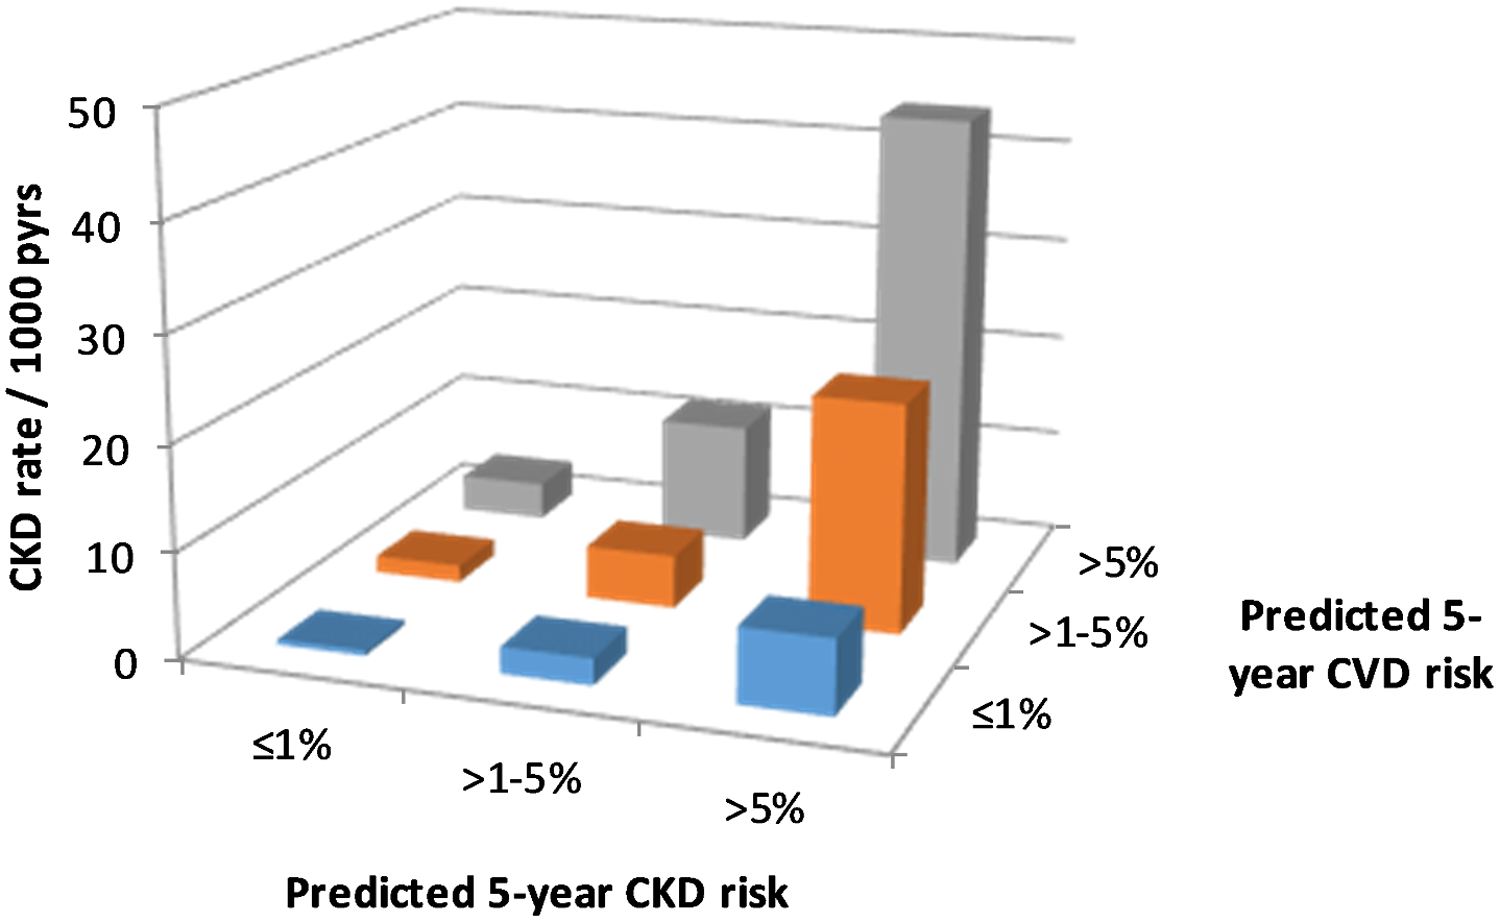 CKD event rates according to CKD and CVD risk.